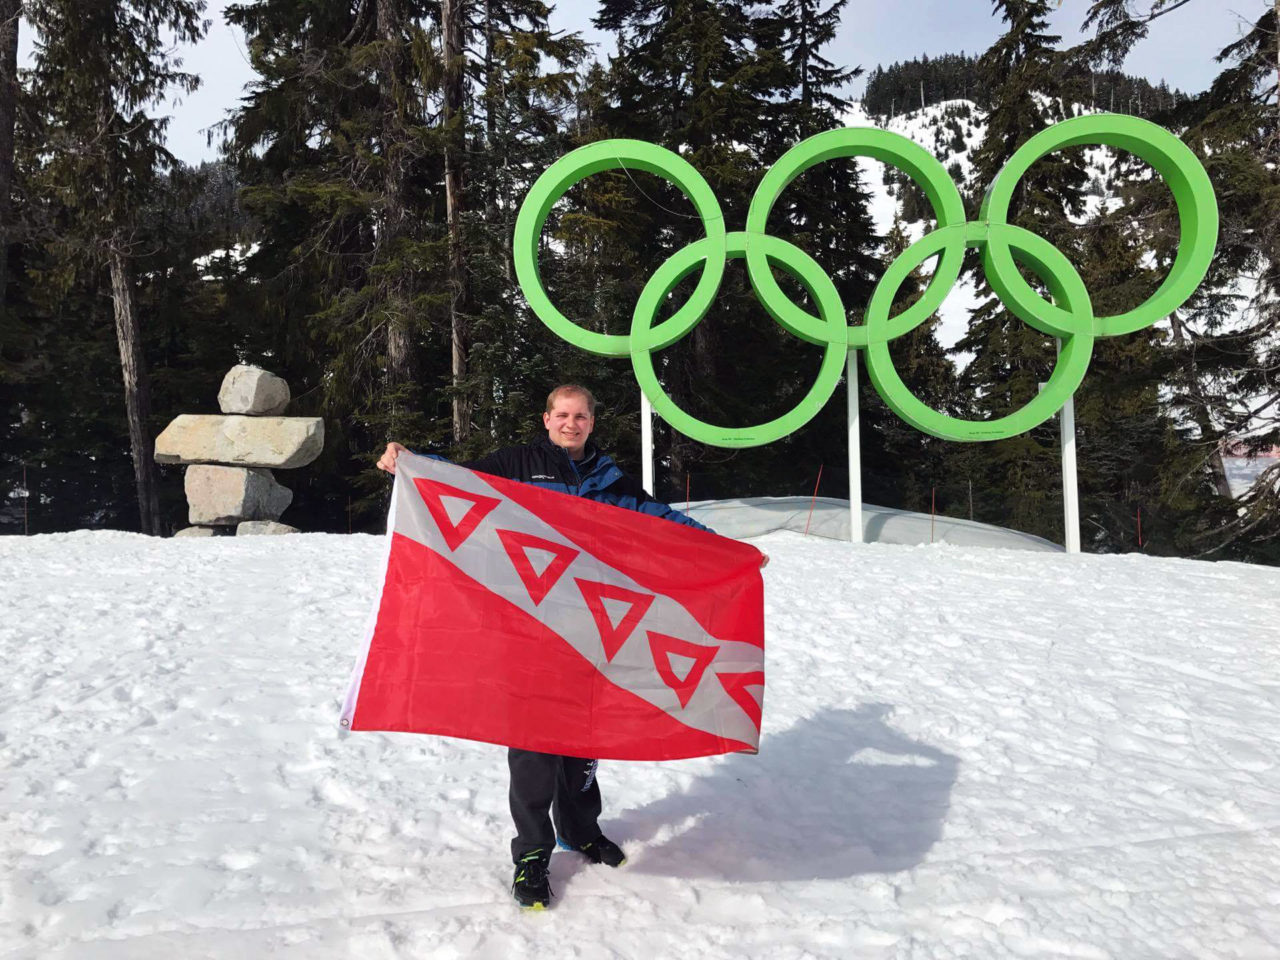 Orsini holding the flag of his fraternity, Tau Kappa Epsilon, in front of the Olympic Rings on Cypress Mountain in British Columbia, Canada.